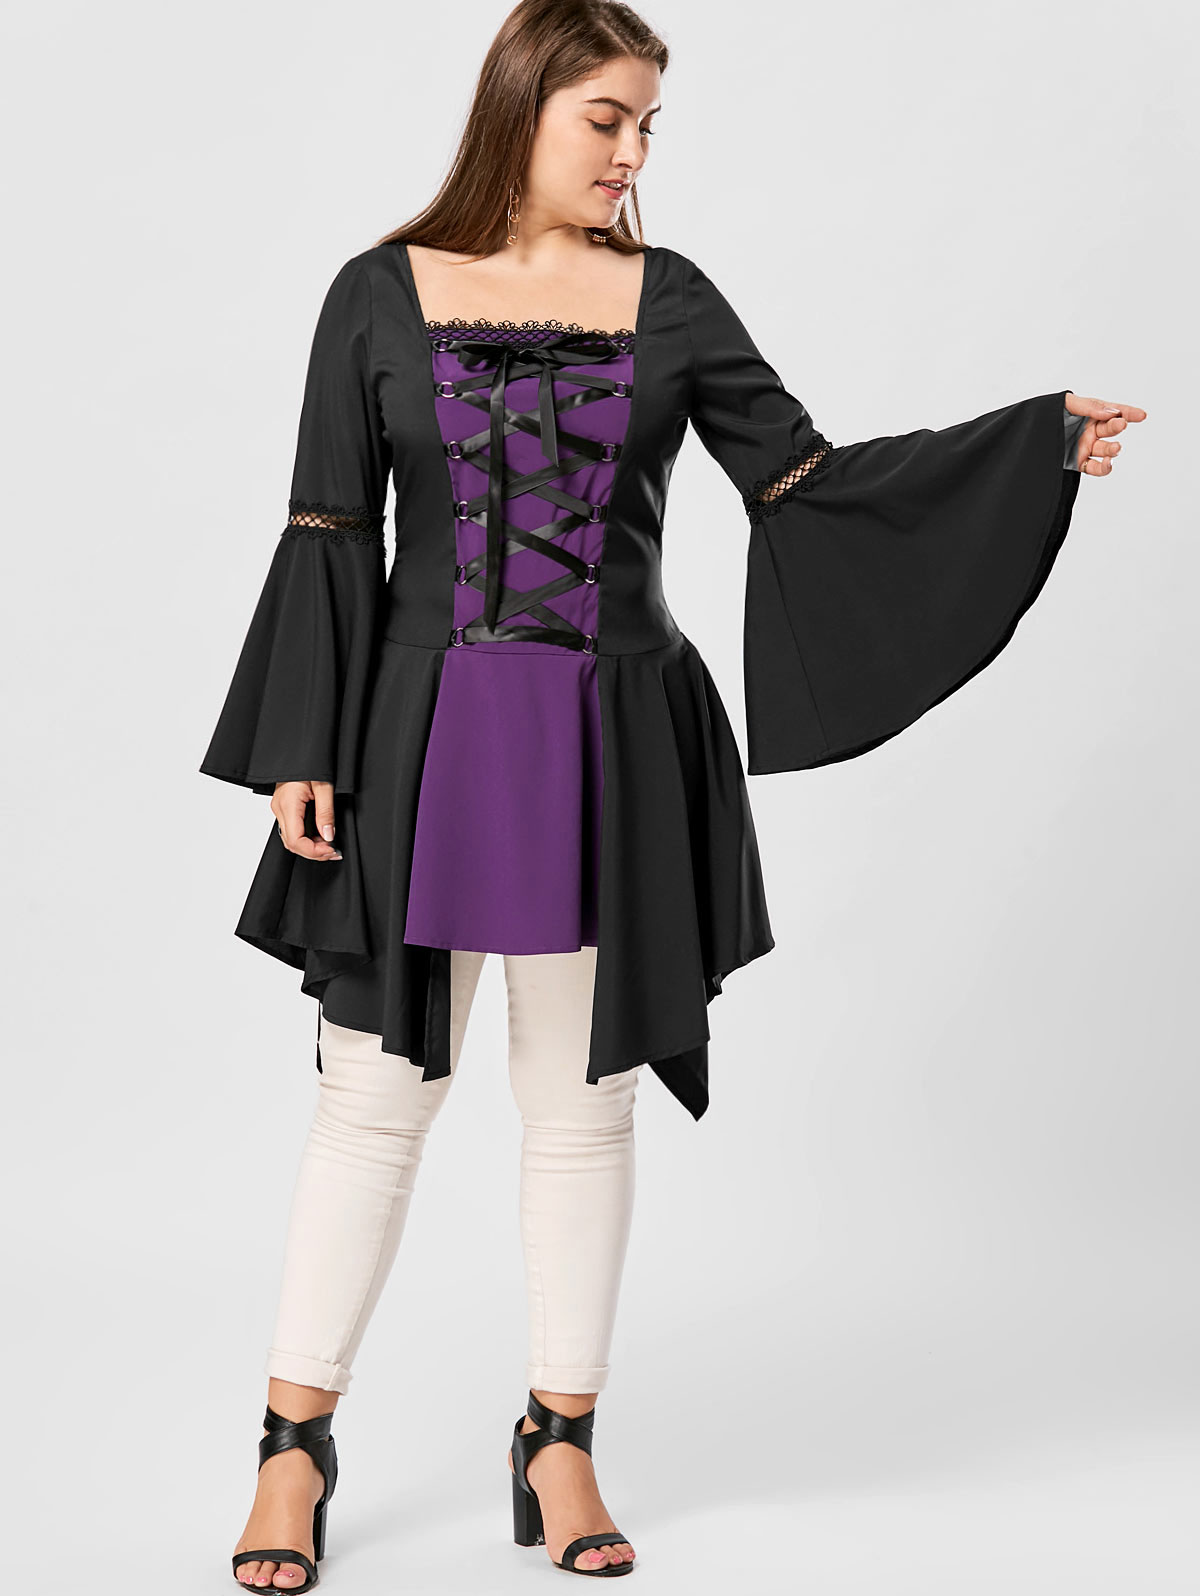 73a574725dd74 Wipalo Ladies Flare Bell Sleeve Blouse Shirt Vintage Lace Up Gothic Lolita  Top Women Clothes Asymmetrical Blusas Plus Size